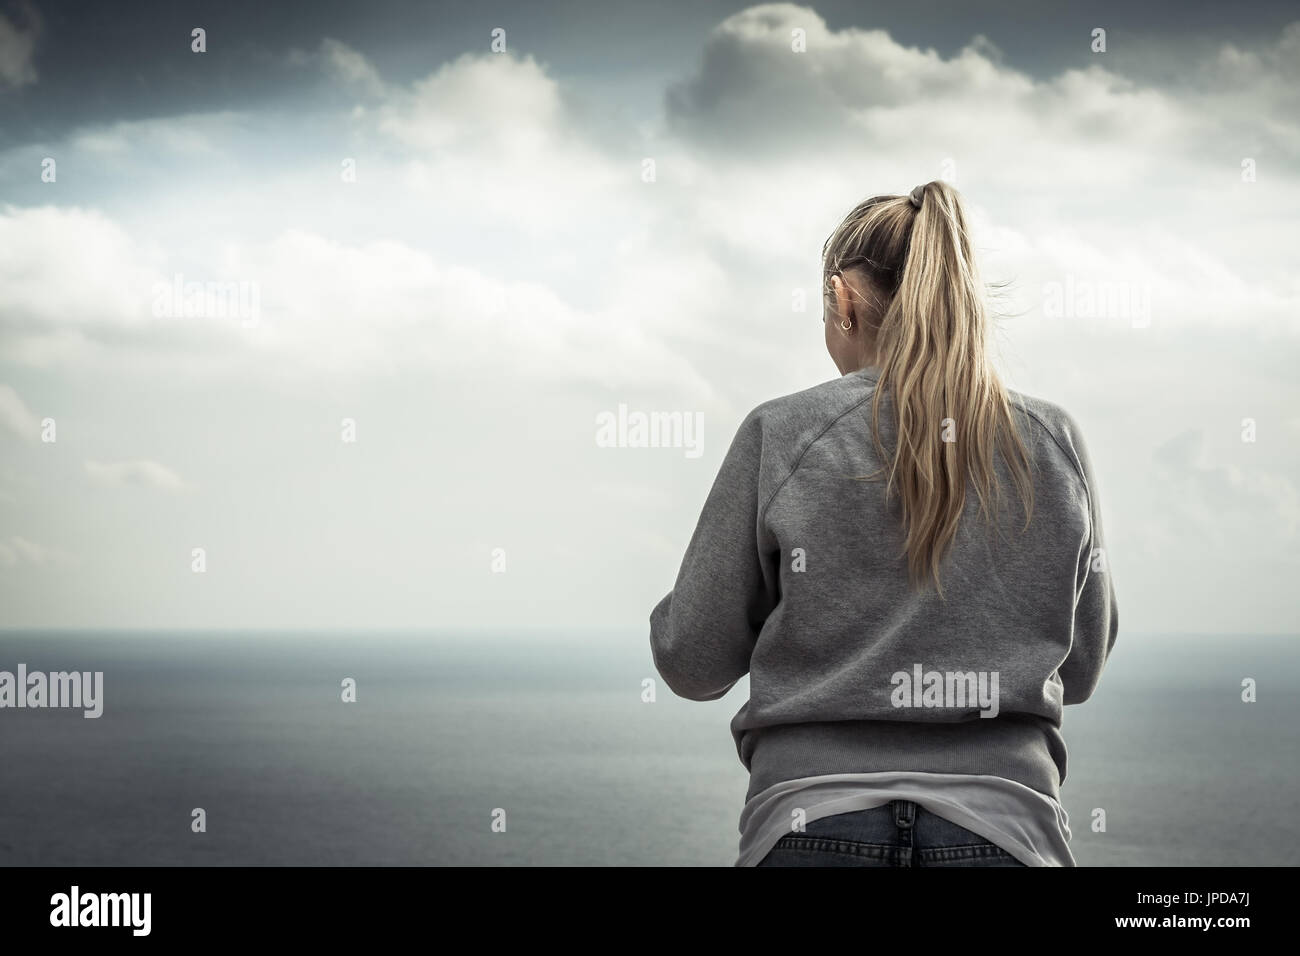 Young blonde smiling woman portrait with with blurred mountains landscape on background in overcast day - Stock Image